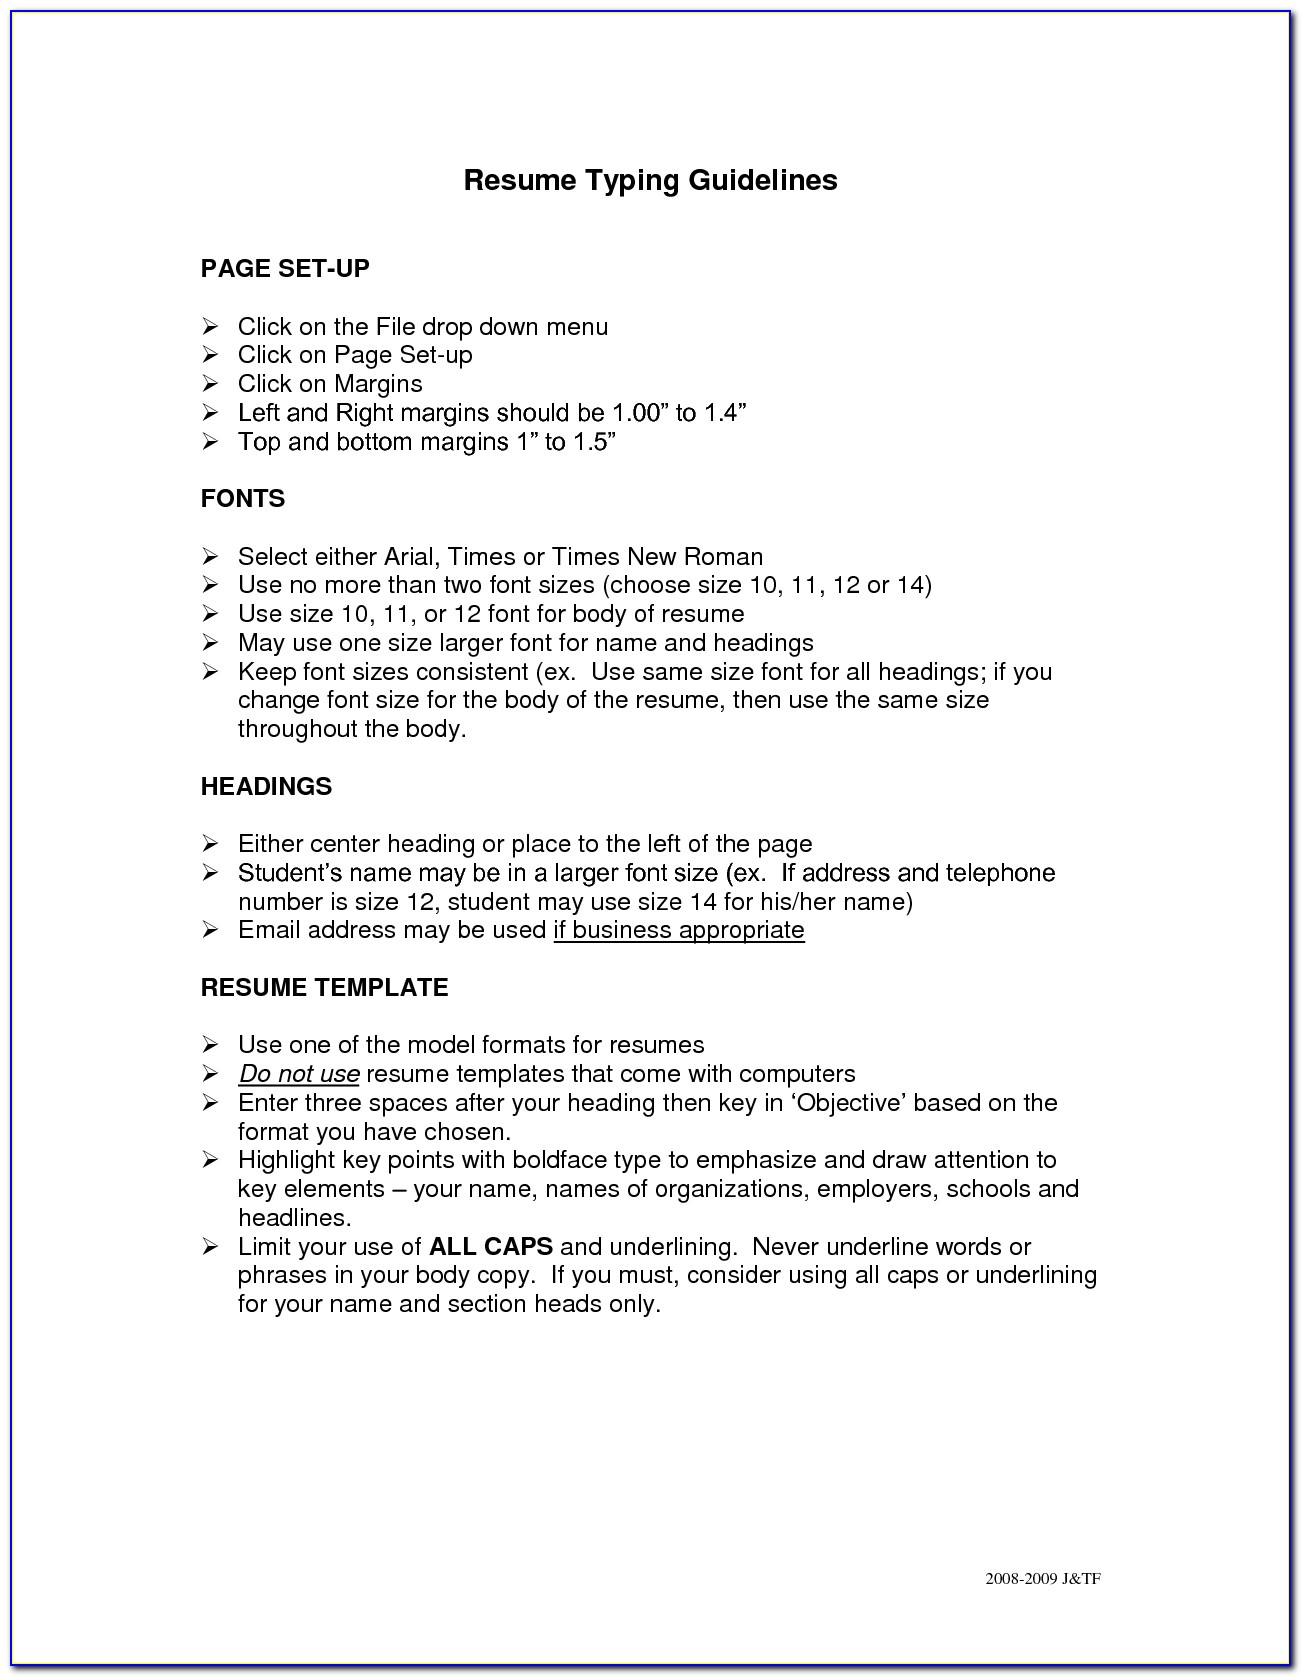 How To Prepare Resume For Job Fair